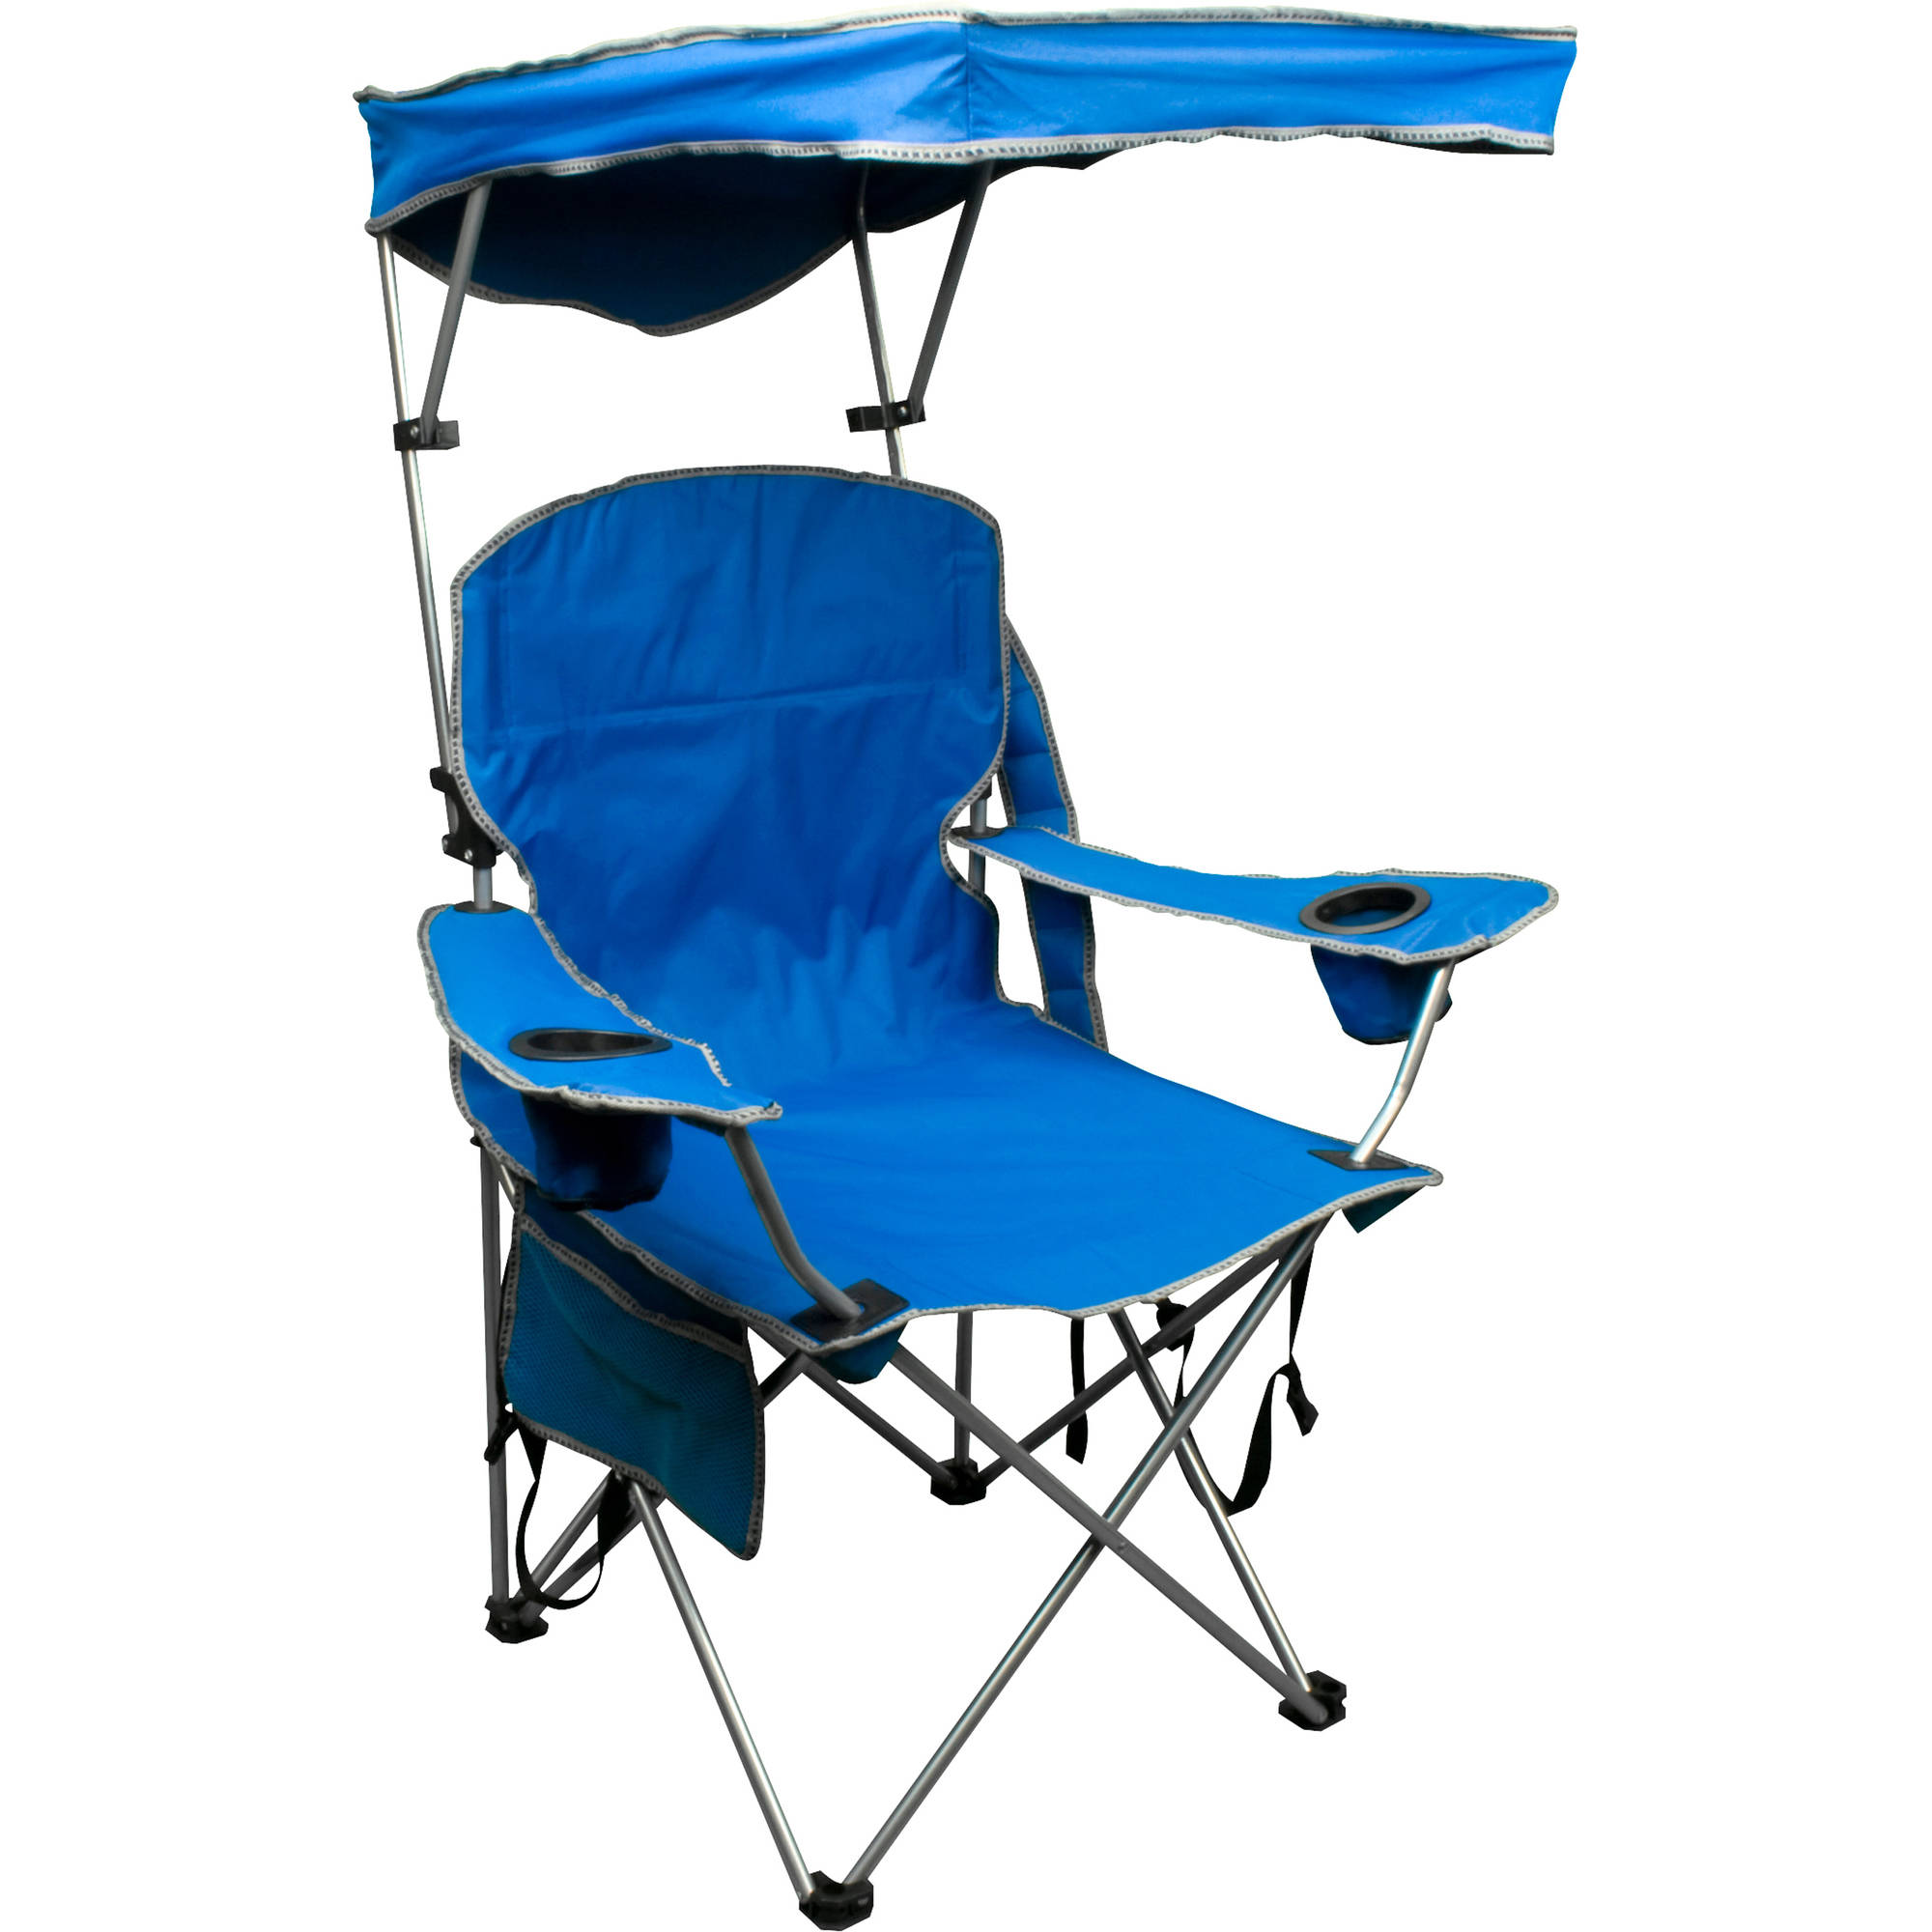 Camping chairs with umbrella - Camping Chairs With Umbrella 27